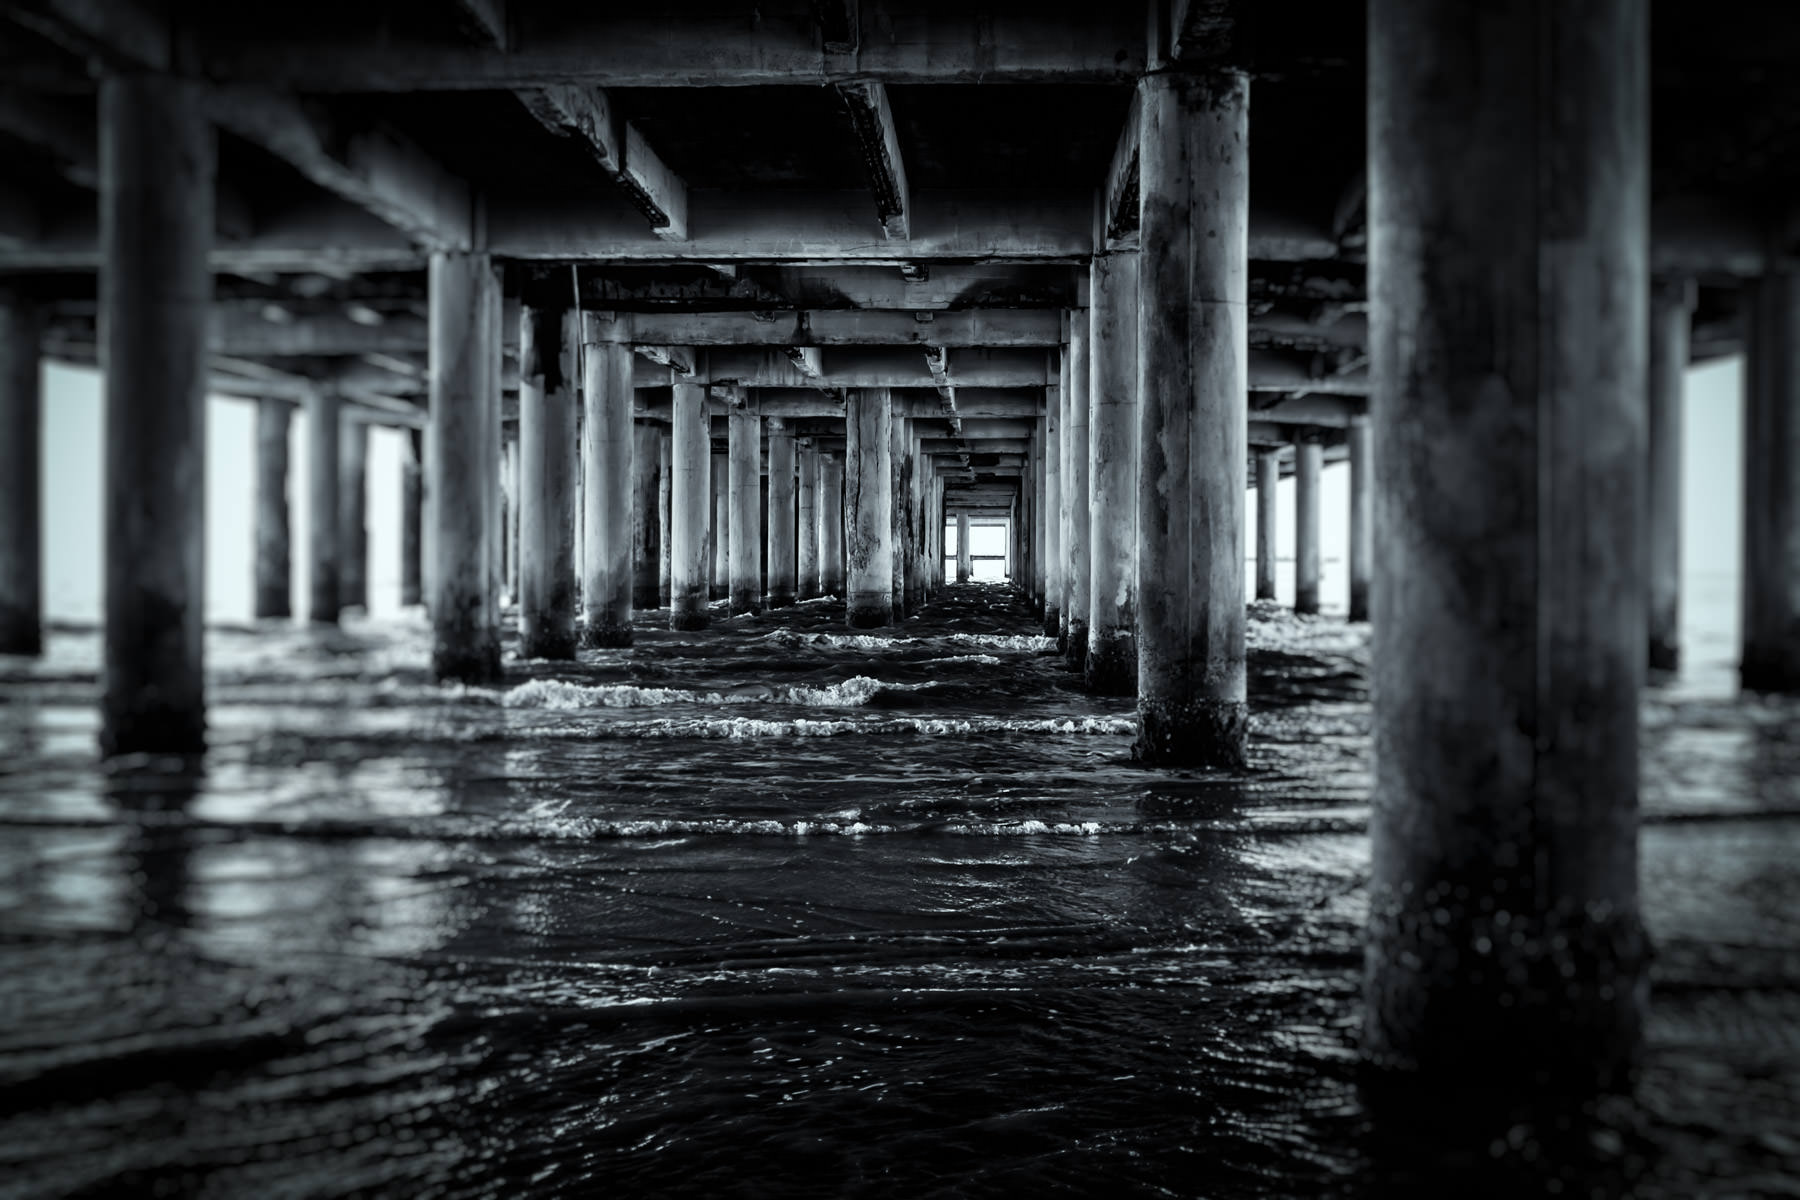 Surf of the Gulf of Mexico laps at pilings under the decaying Flagship Hotel, Galveston, Texas.